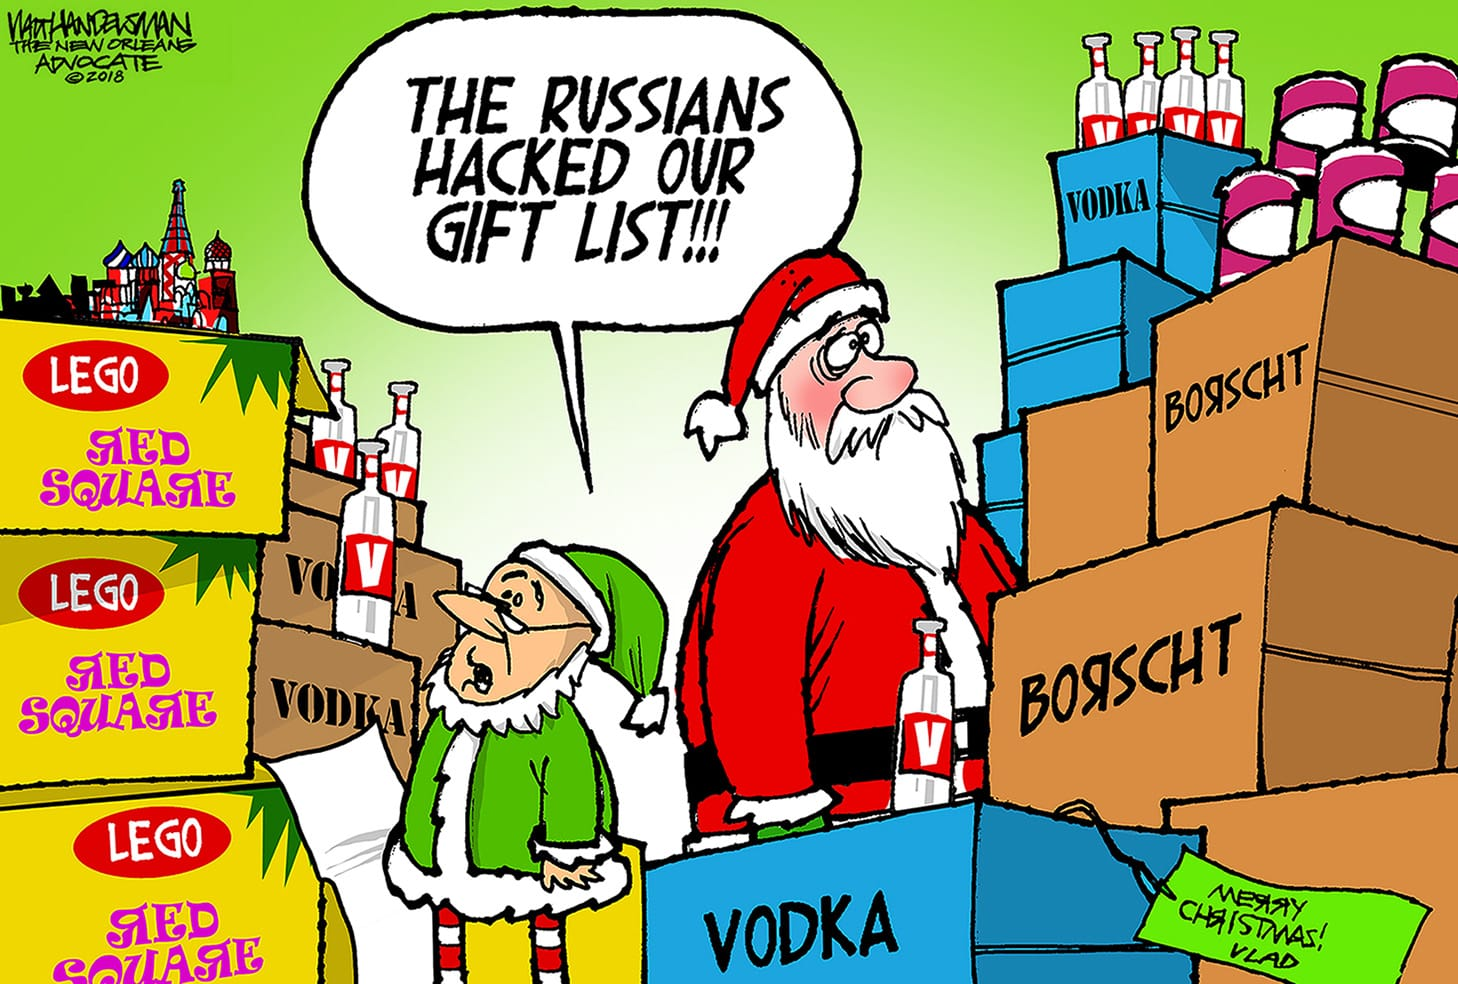 Dec. 22: Russian Hacking